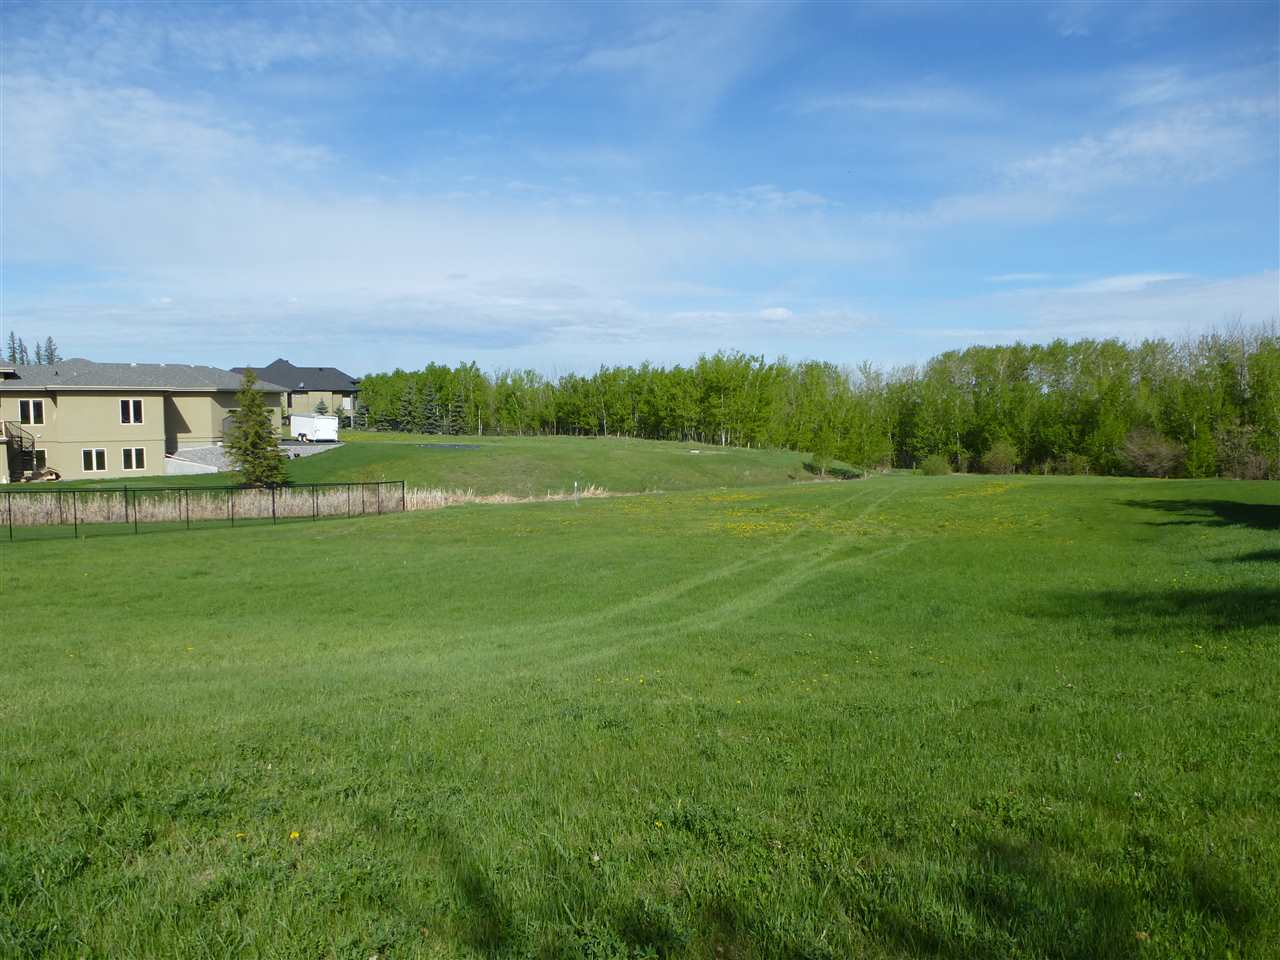 Photo 5: 60 53217 RGE RD 263 Road: Rural Parkland County Rural Land/Vacant Lot for sale : MLS(r) # E4065068